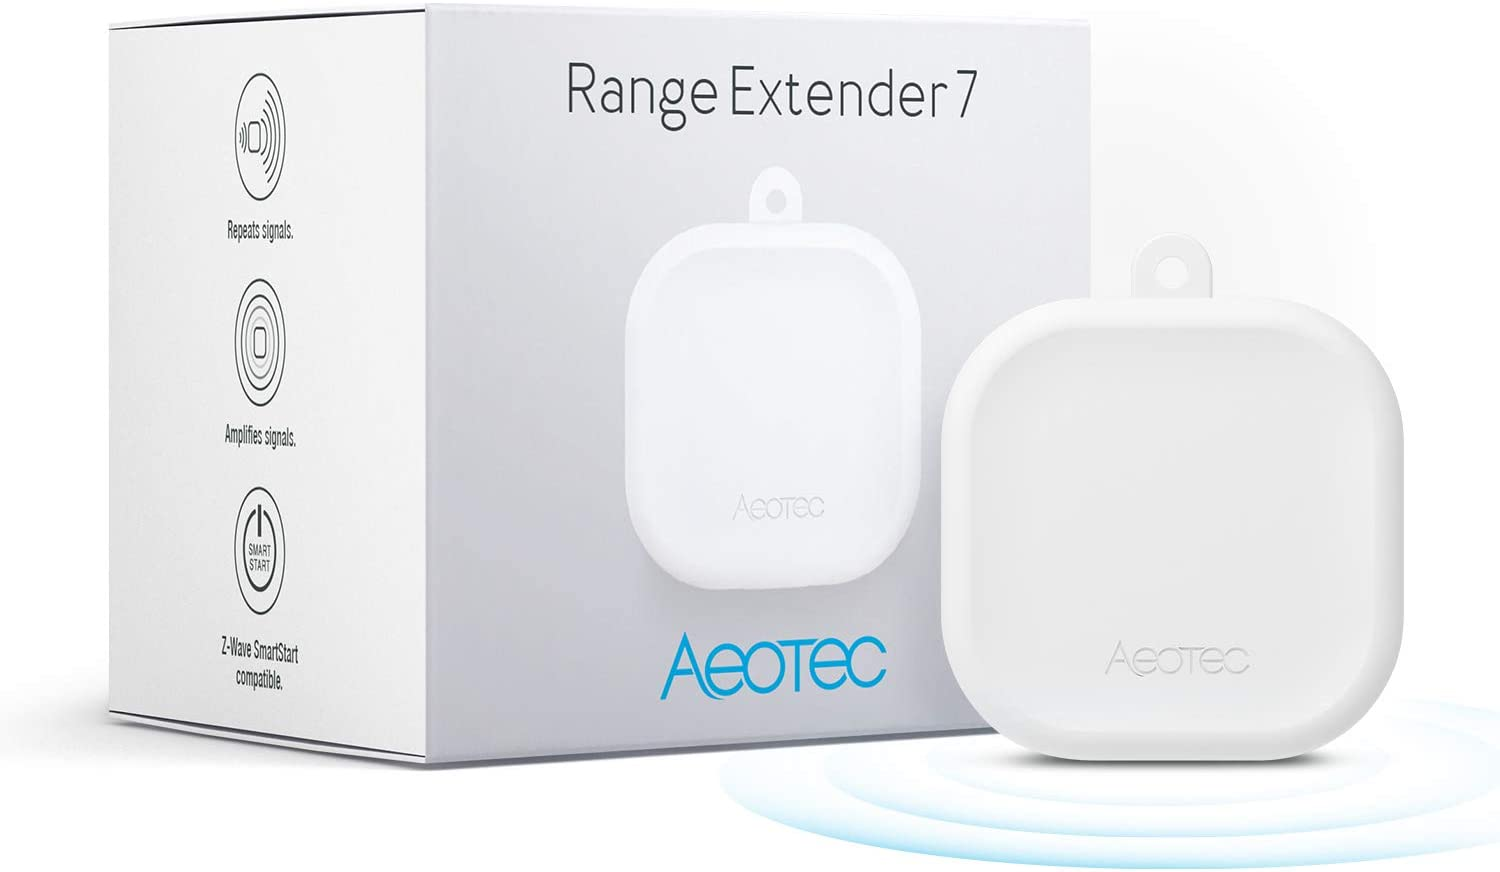 Aeotec Range Extender 7, Z-Wave Plus Repeater, Zwave Extender, Gen7, 700 Series, V2, with SmartStart and S2, Compatible with SmartThings, White